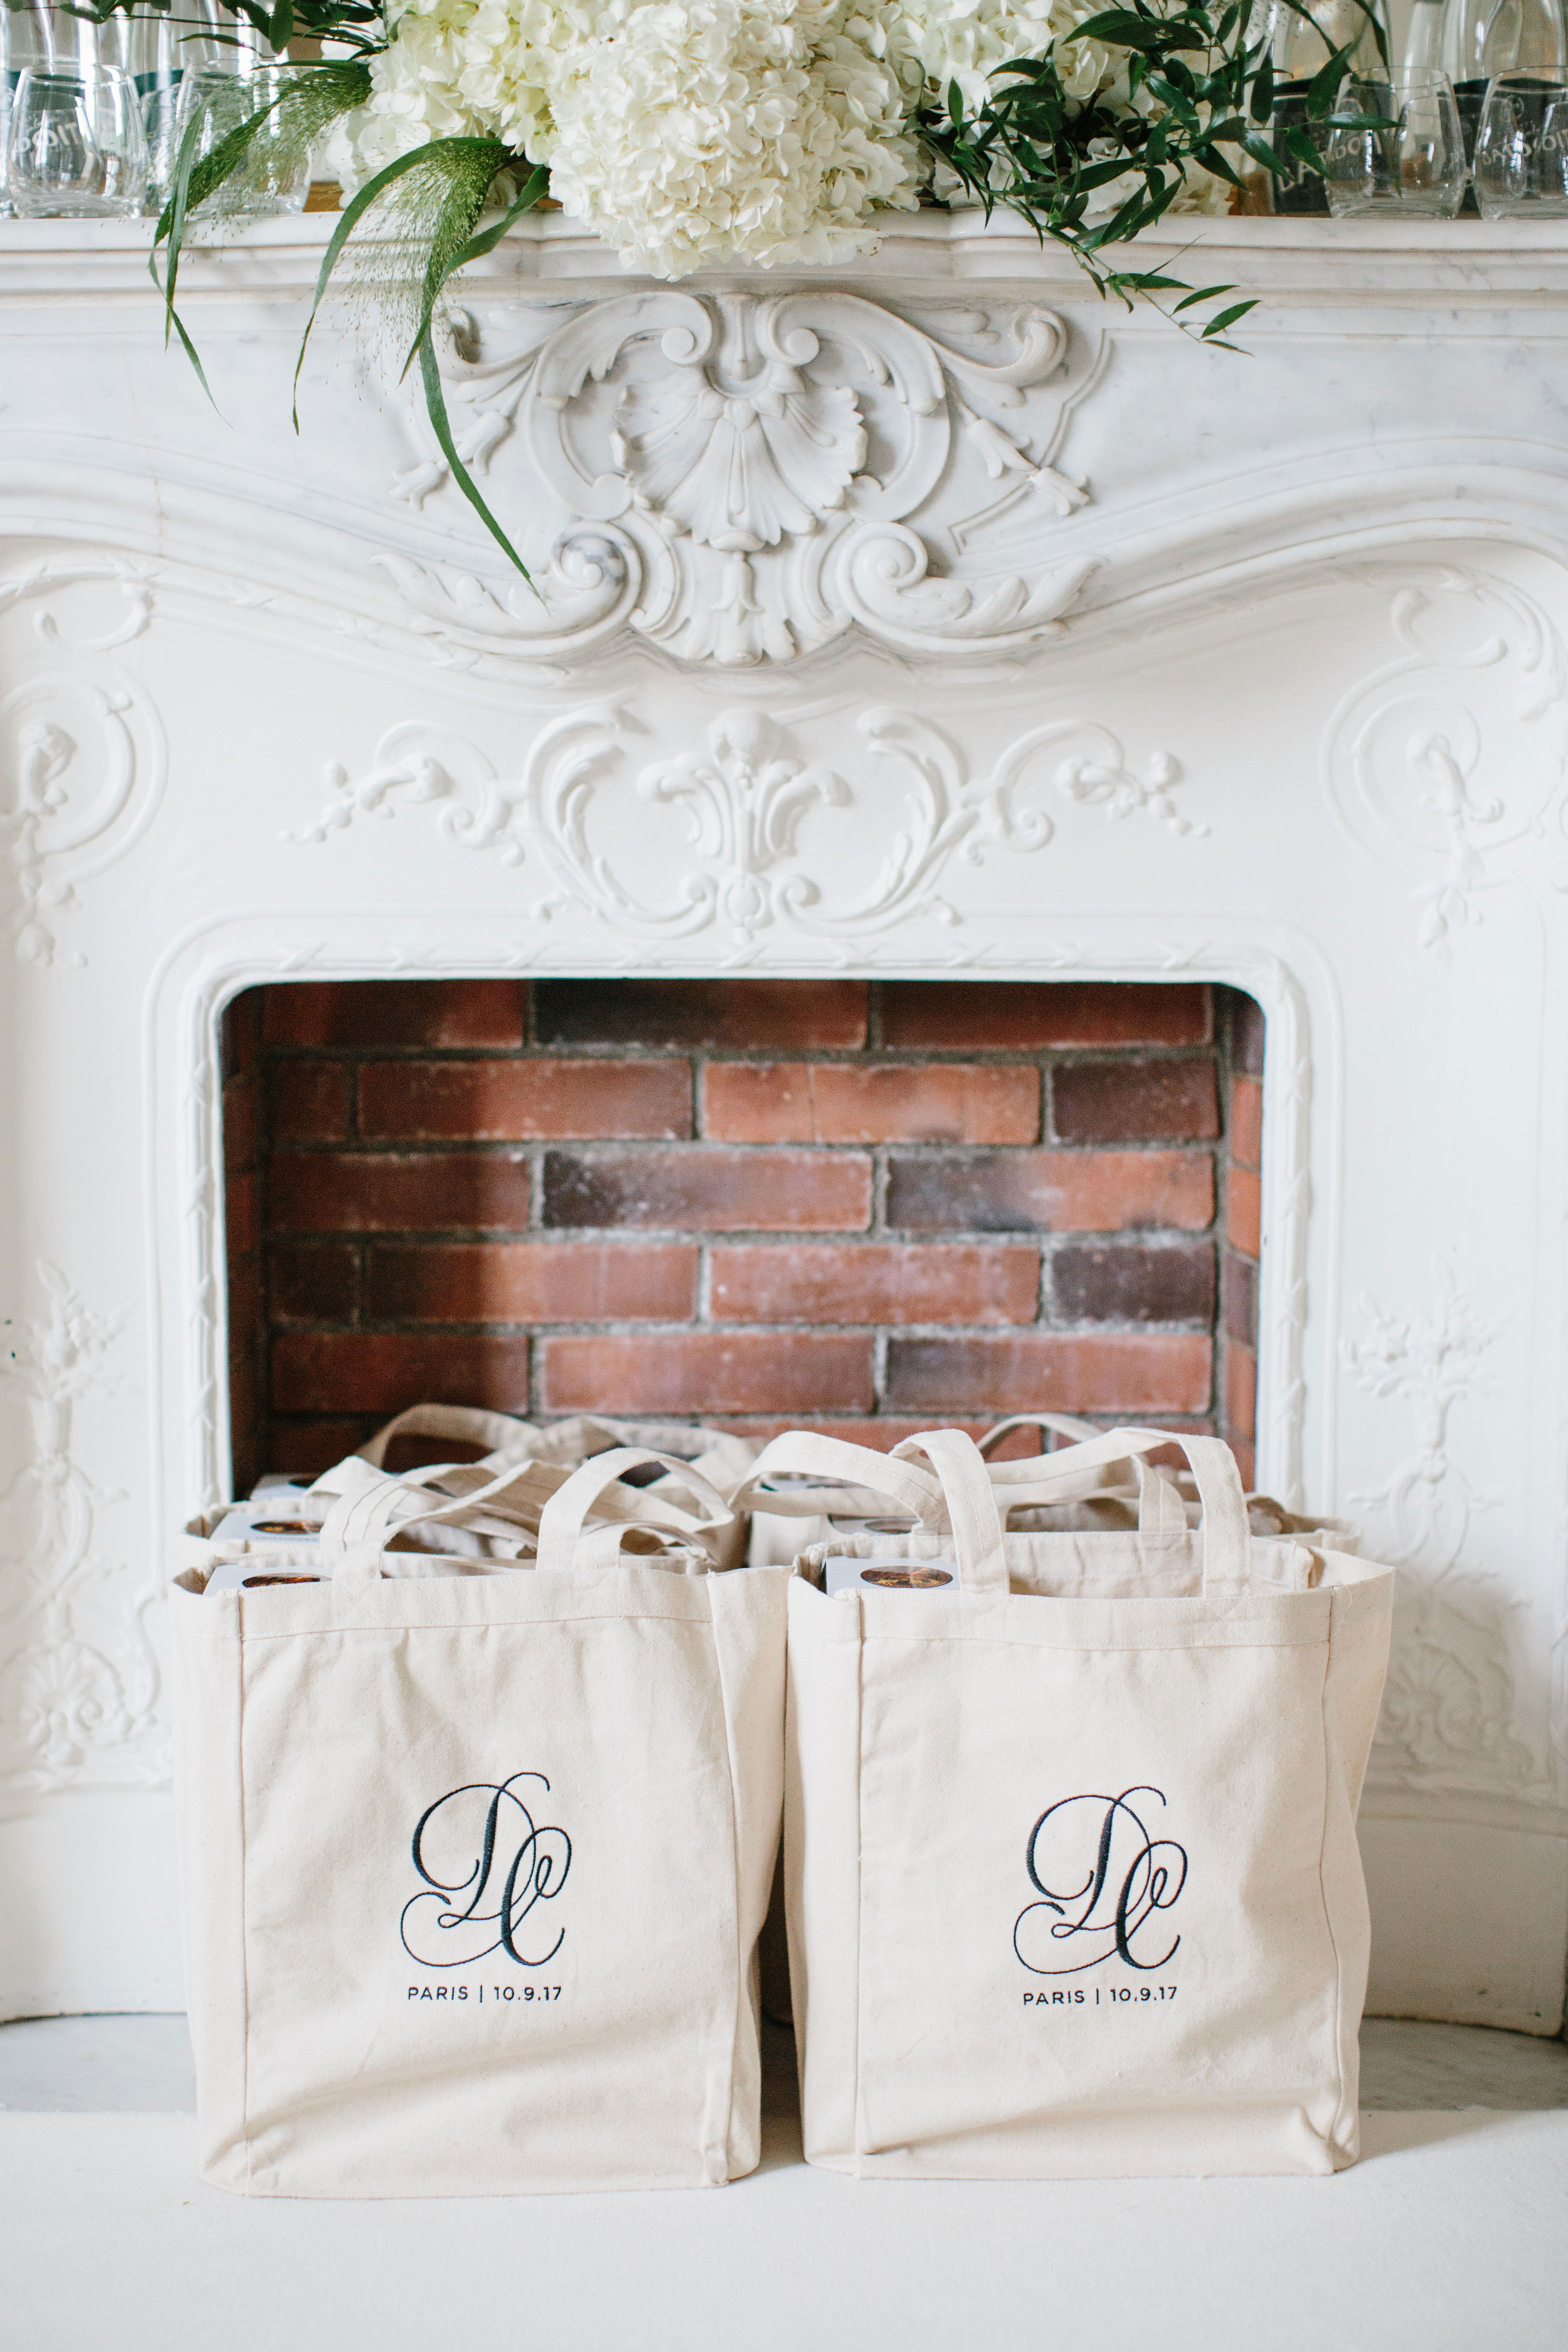 Thematic Wedding Favors